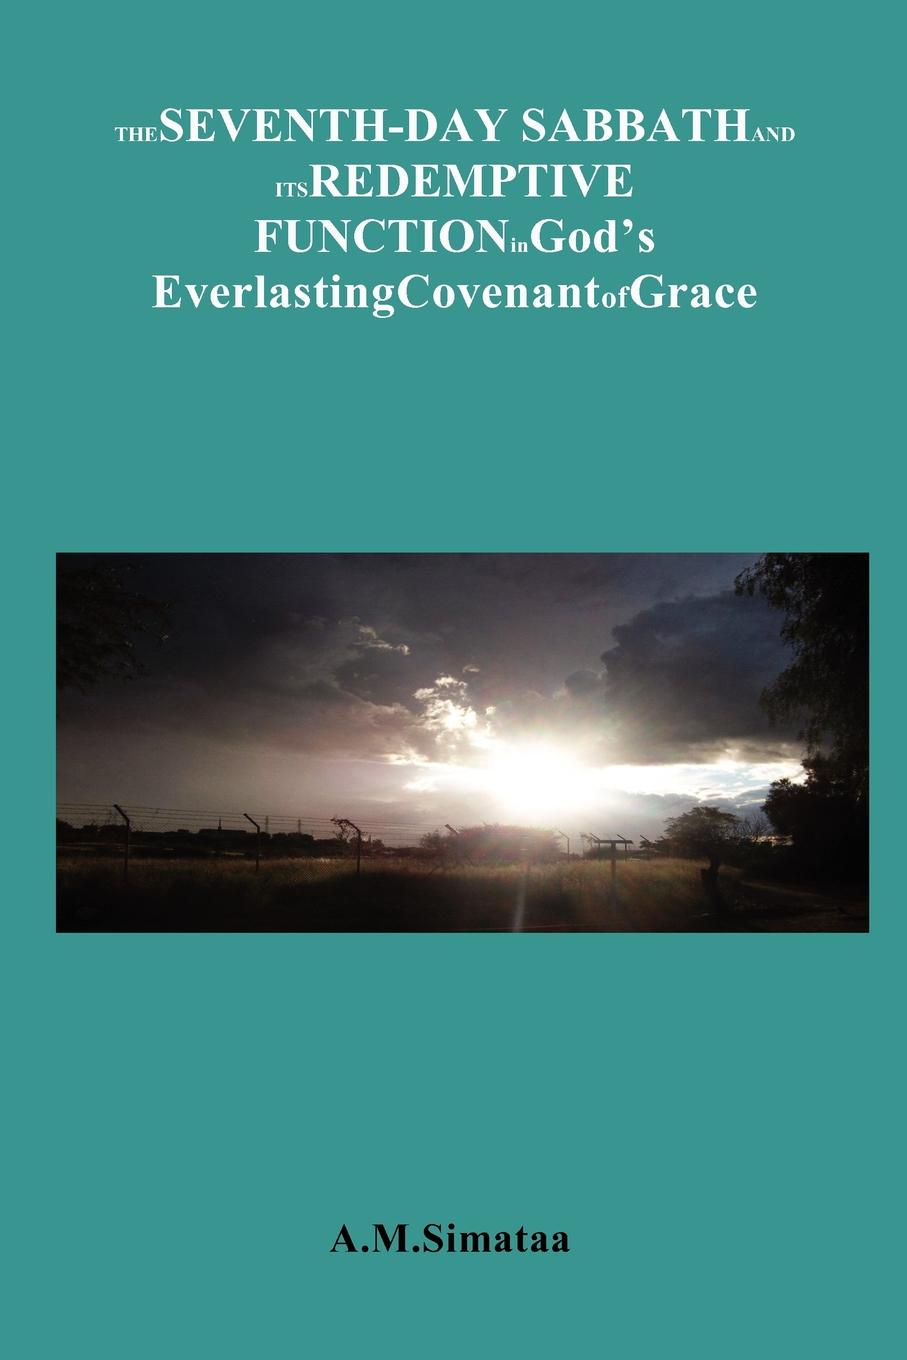 A.M.Simataa The Seventh-Day Sabbath and its Redemptive Function in God's Everlasting Covenant of Grace. A brief look at the role of the Sabbath in the Covenant of Grace andrews silas milton the sabbath at home